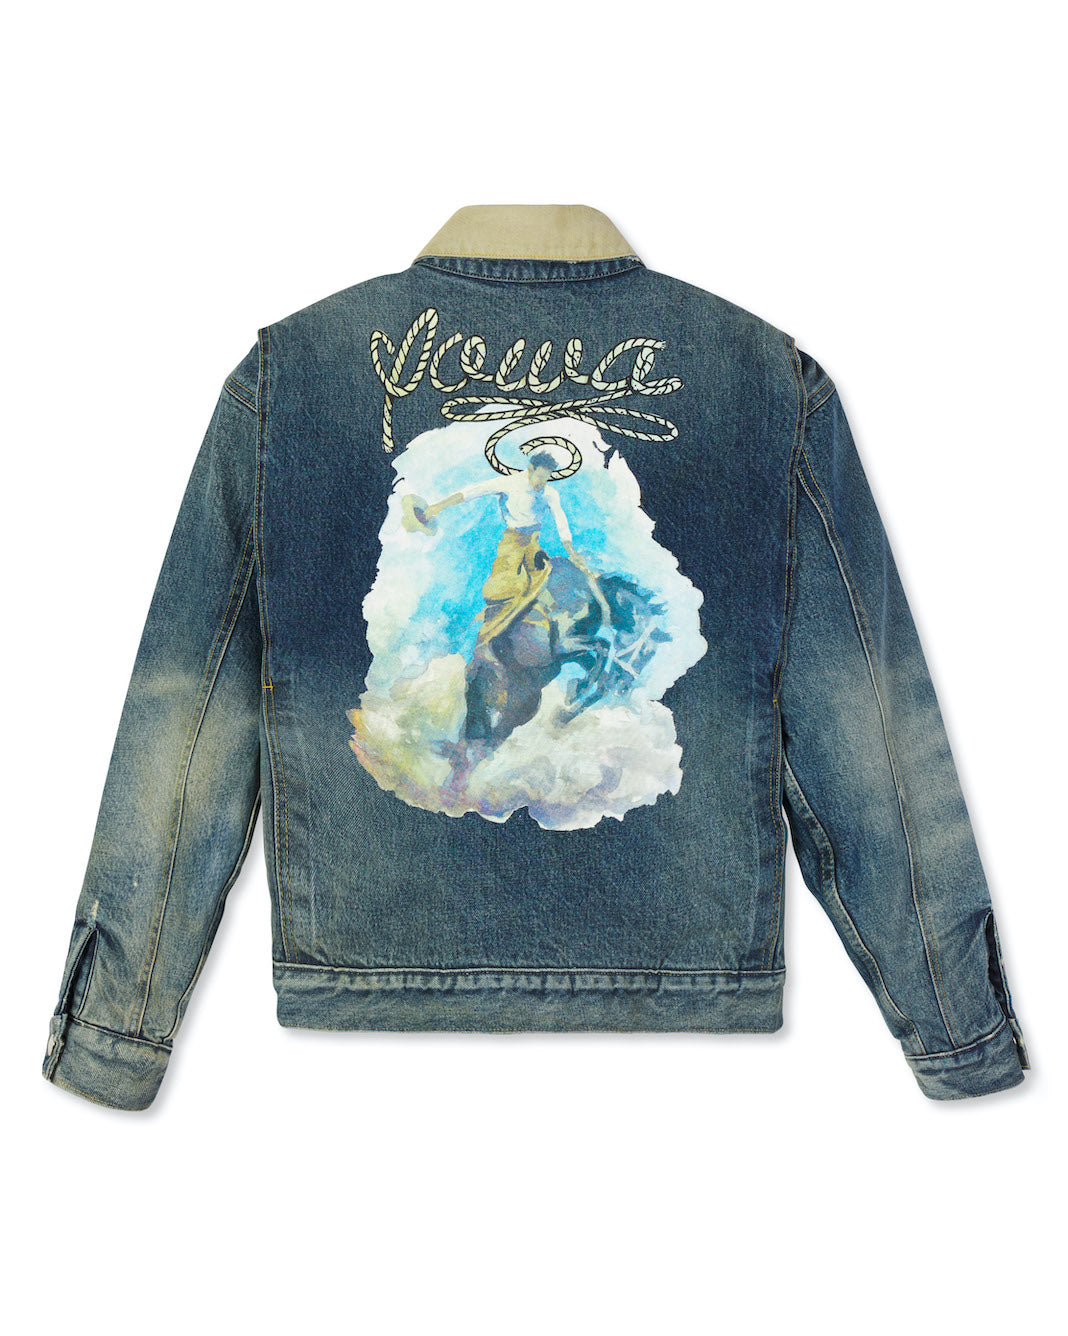 'IOWA' Painted Jacket